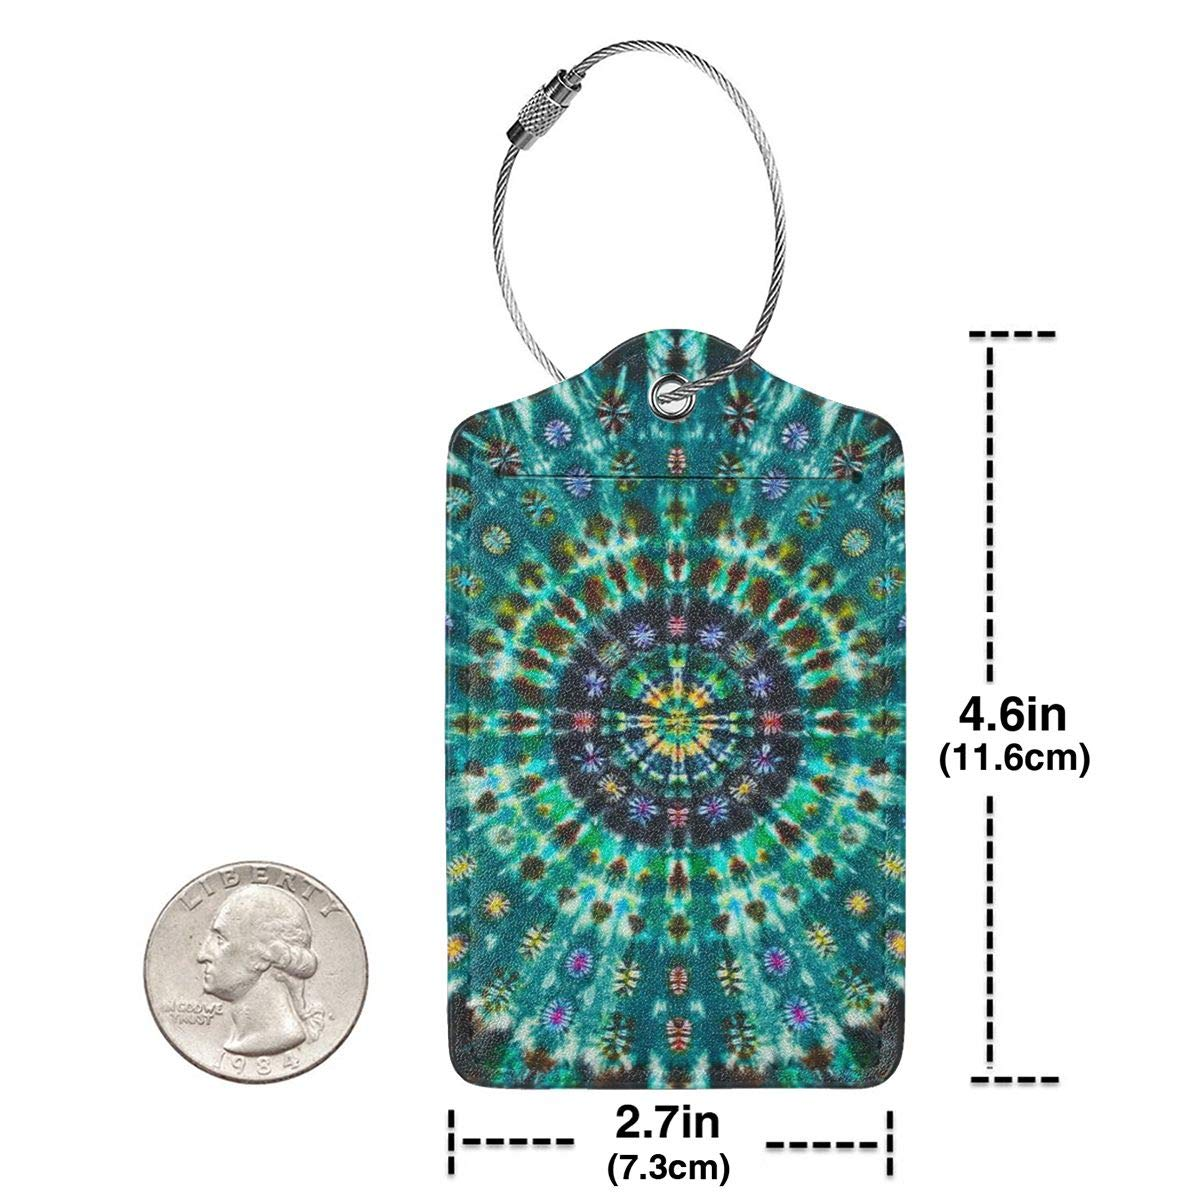 GoldK Mandalas Tie Dye Leather Luggage Tags Baggage Bag Instrument Tag Travel Labels Accessories with Privacy Cover